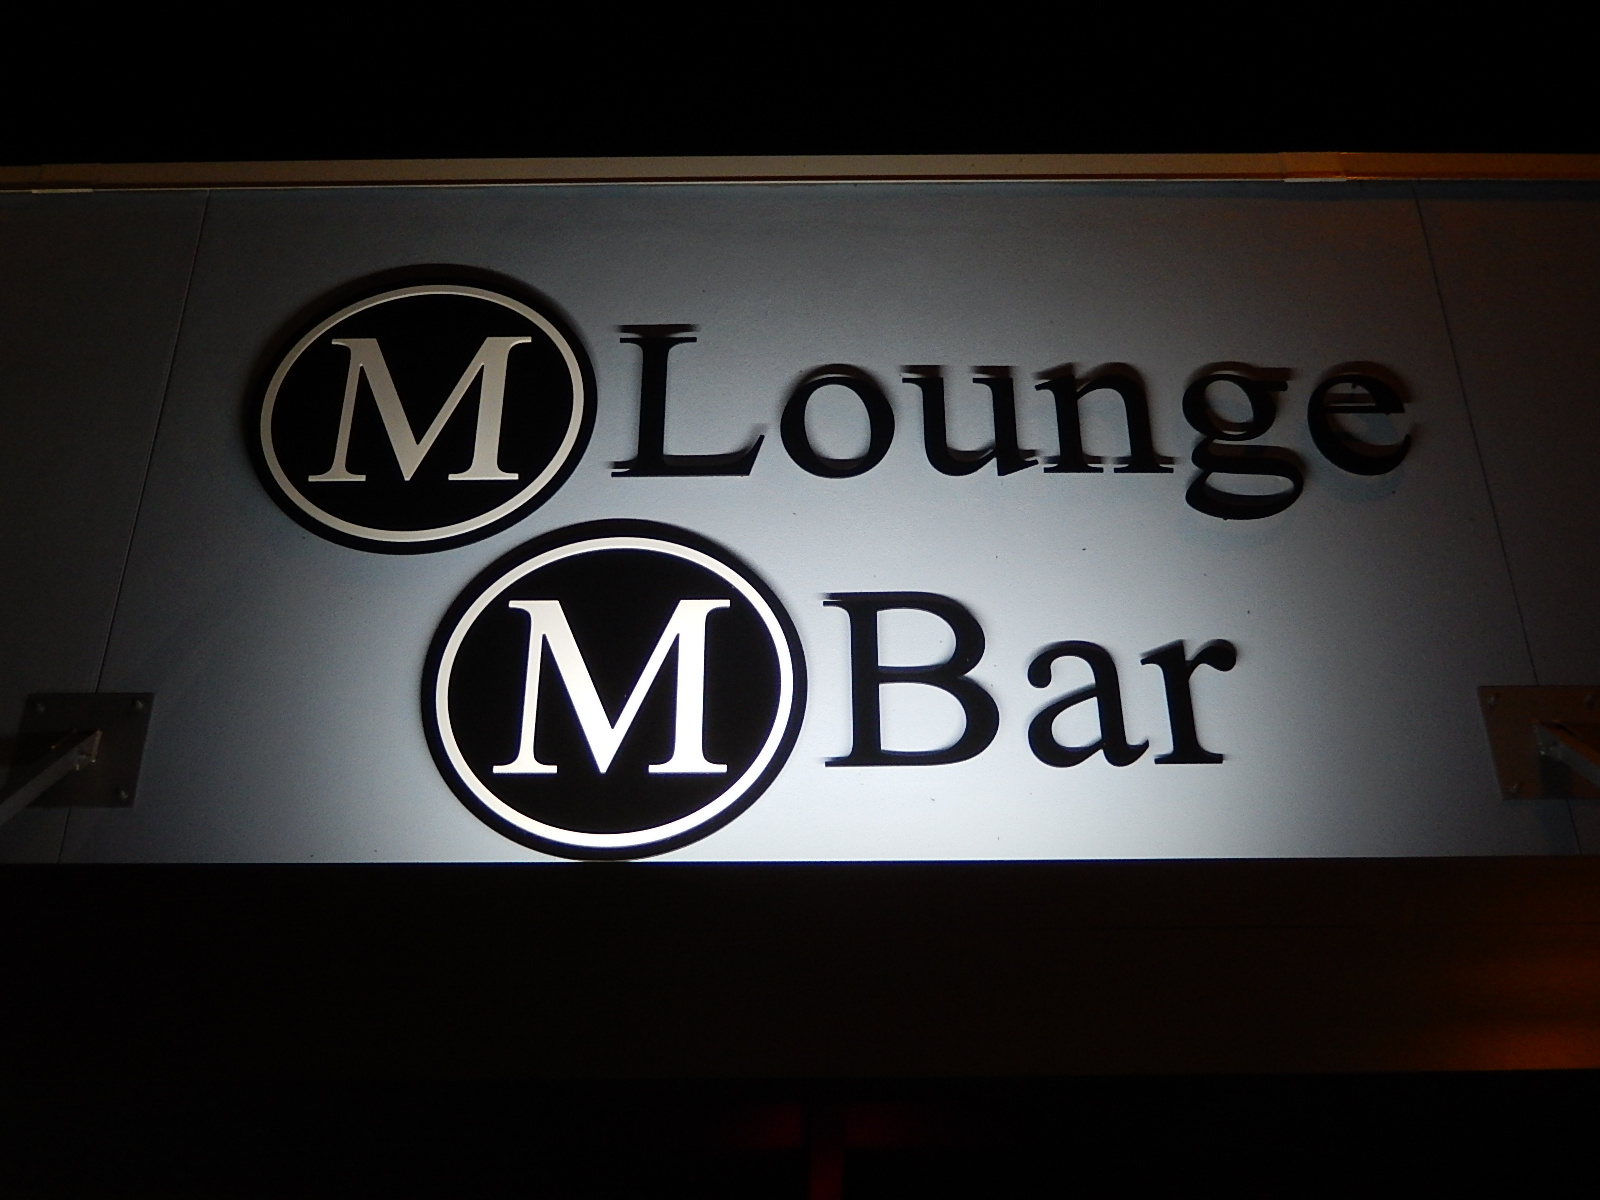 Club Reports: M Bar, M Lounge, The Treehouse, Shots Orlando, Hansonu0027s Shoe  Repair, Celine, The Lodge, Saddle Up, Aero Bar, The Patio